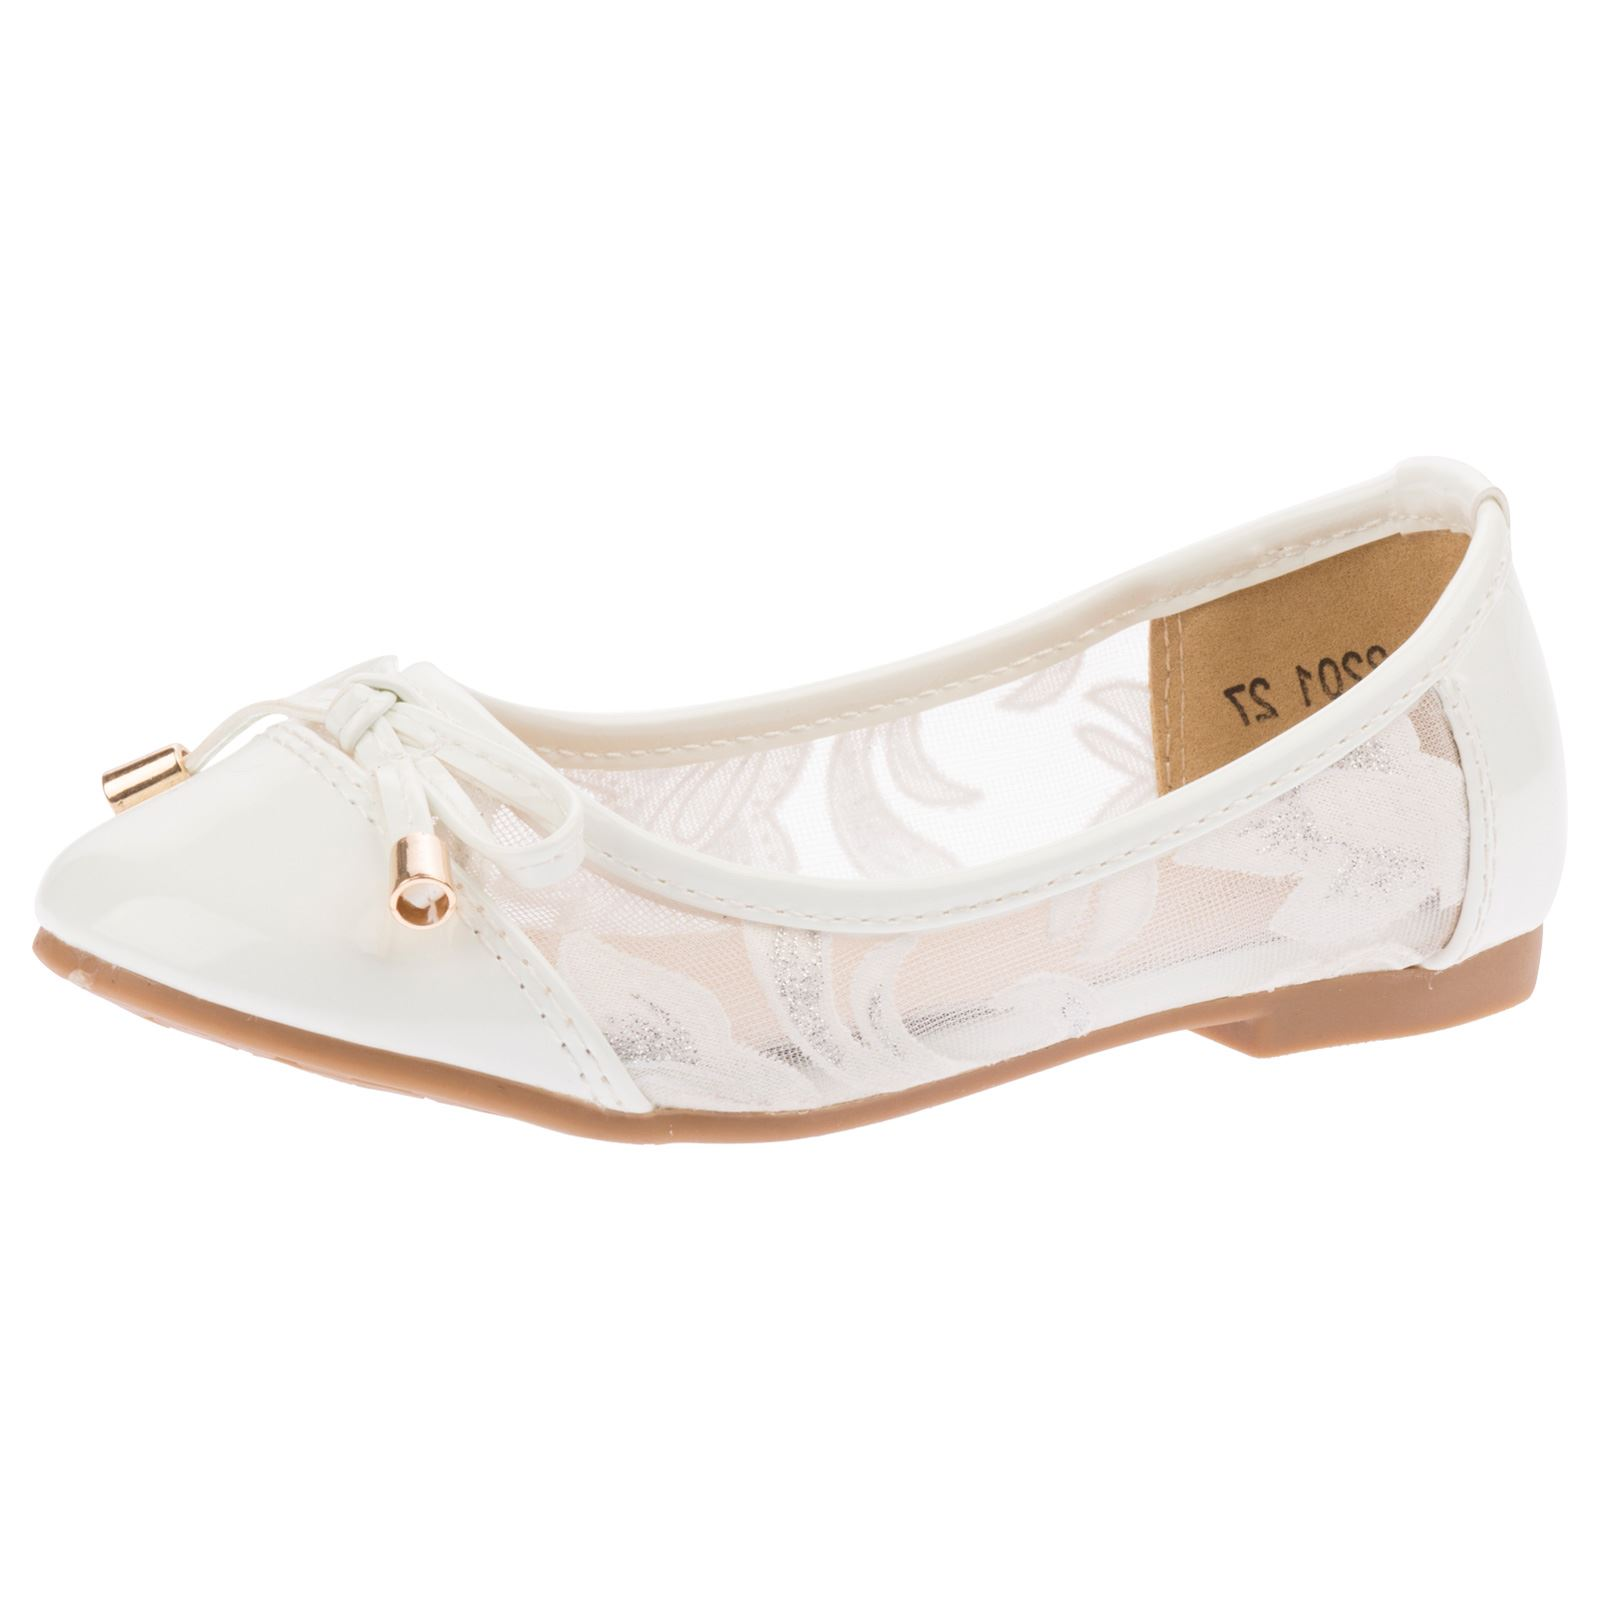 new childrens flats low heels slip on casual